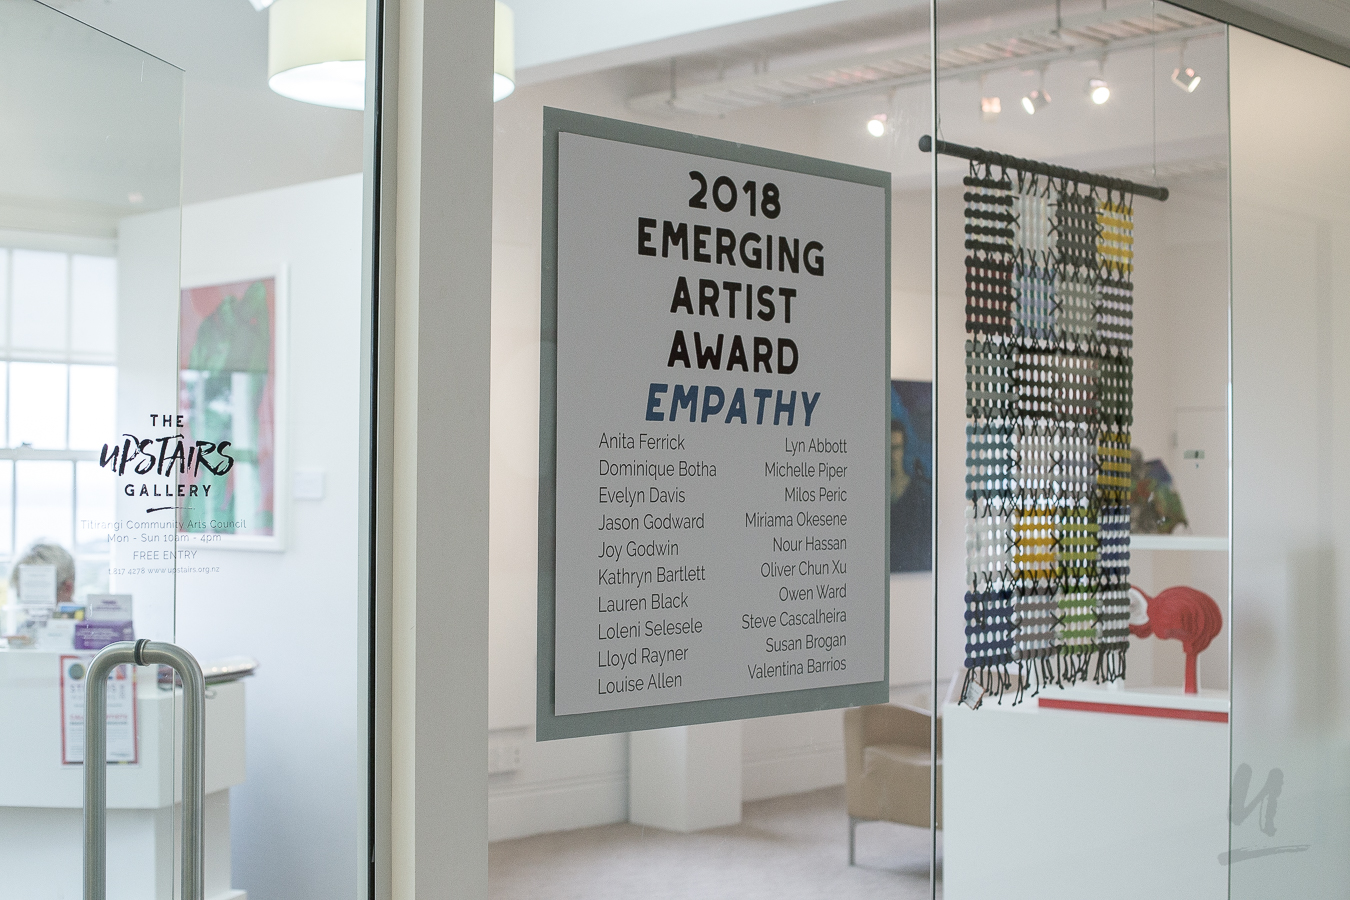 Finalists from our 2018 Emerging Artist Award